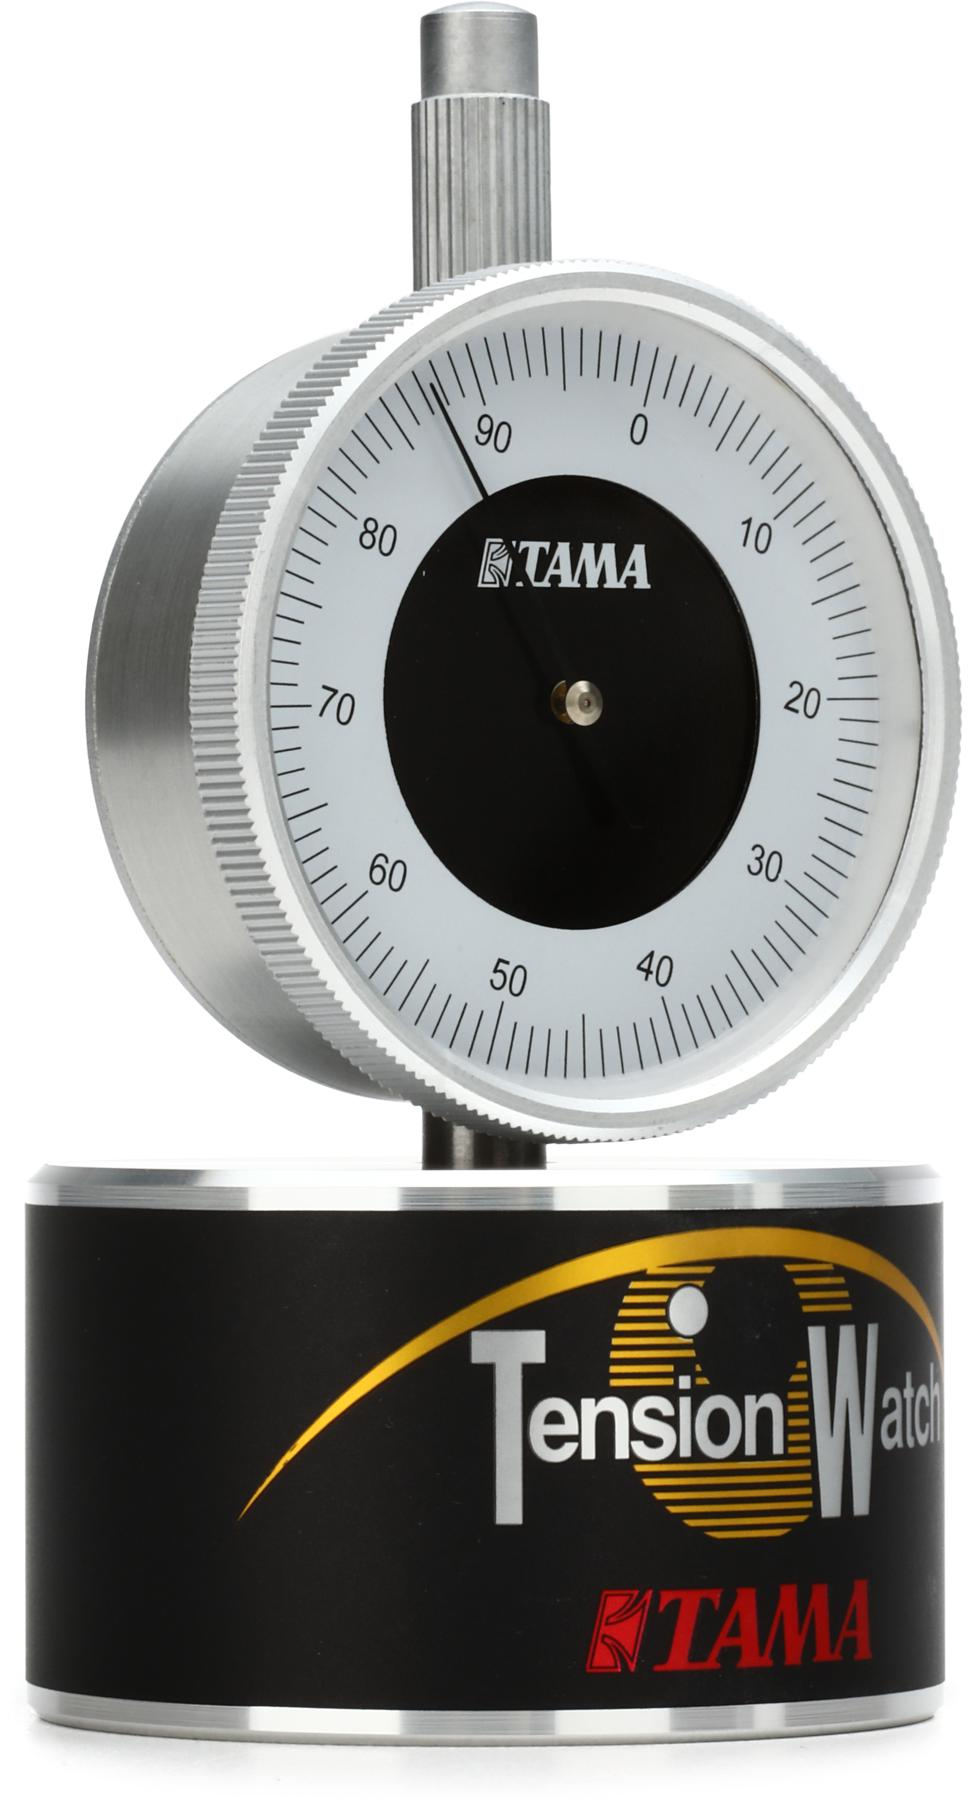 5. TAMA TW100 Tension Watch